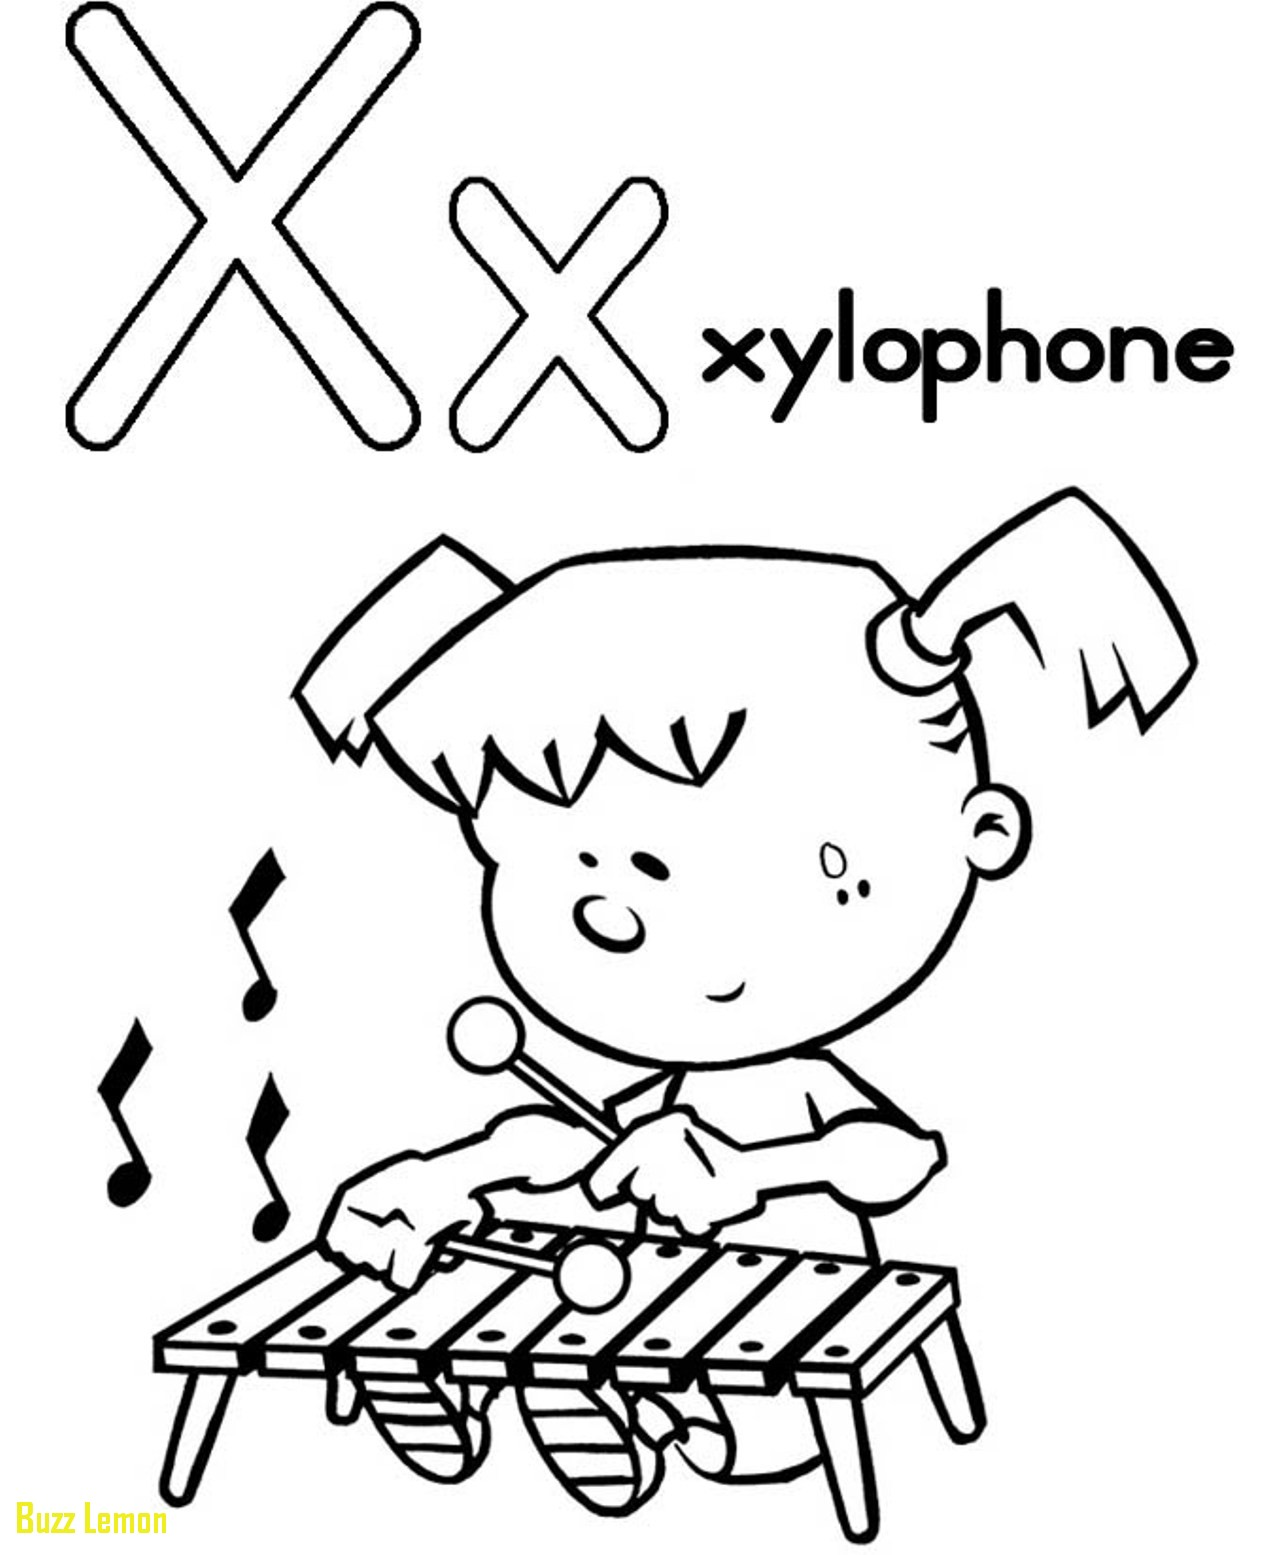 1266x1555 Xylophone Coloring Page New Xylophone Coloring Page Free Buzz